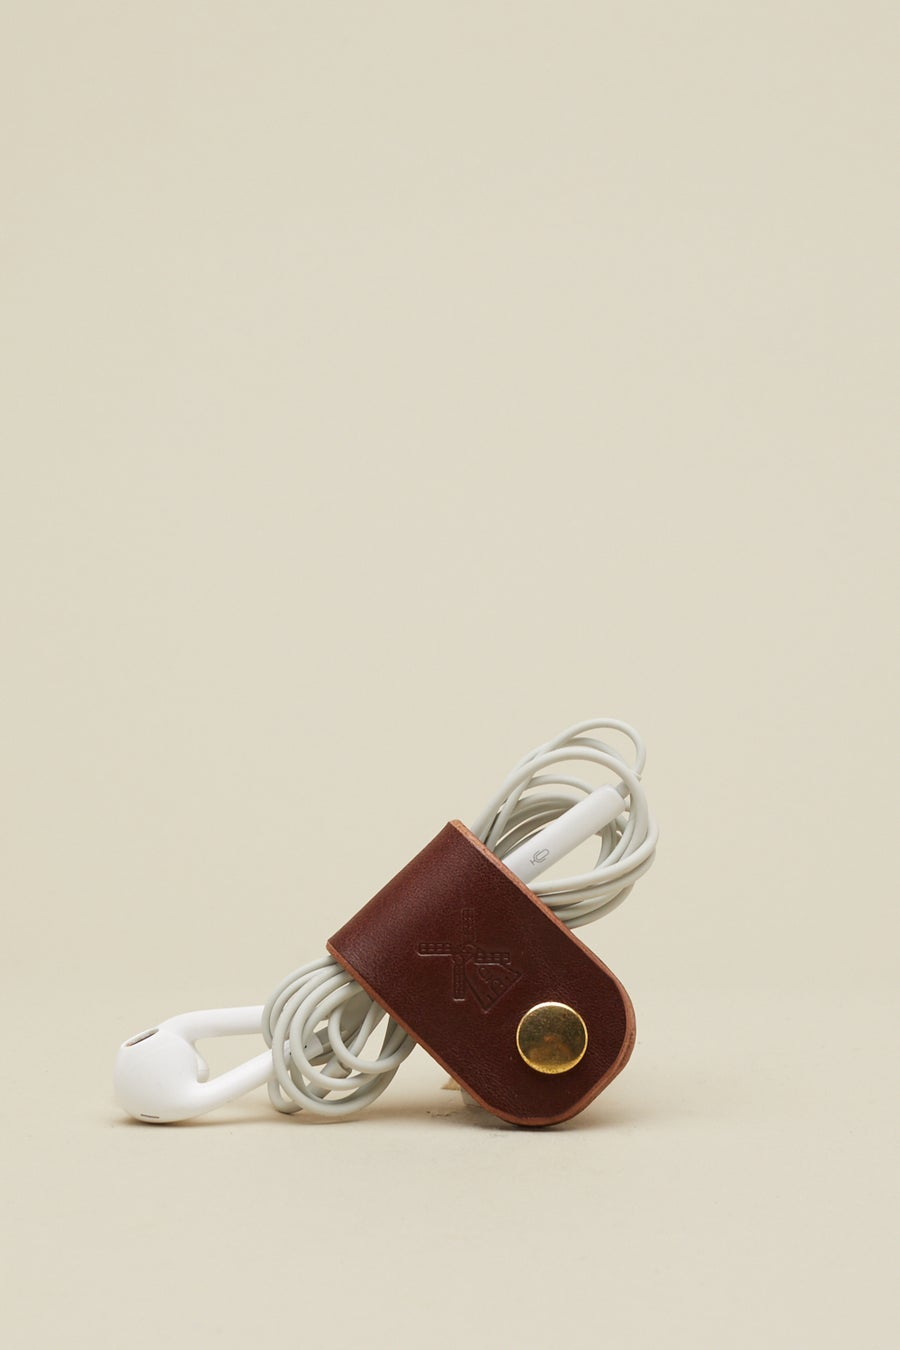 Image of Earphone Holder in Chestnut